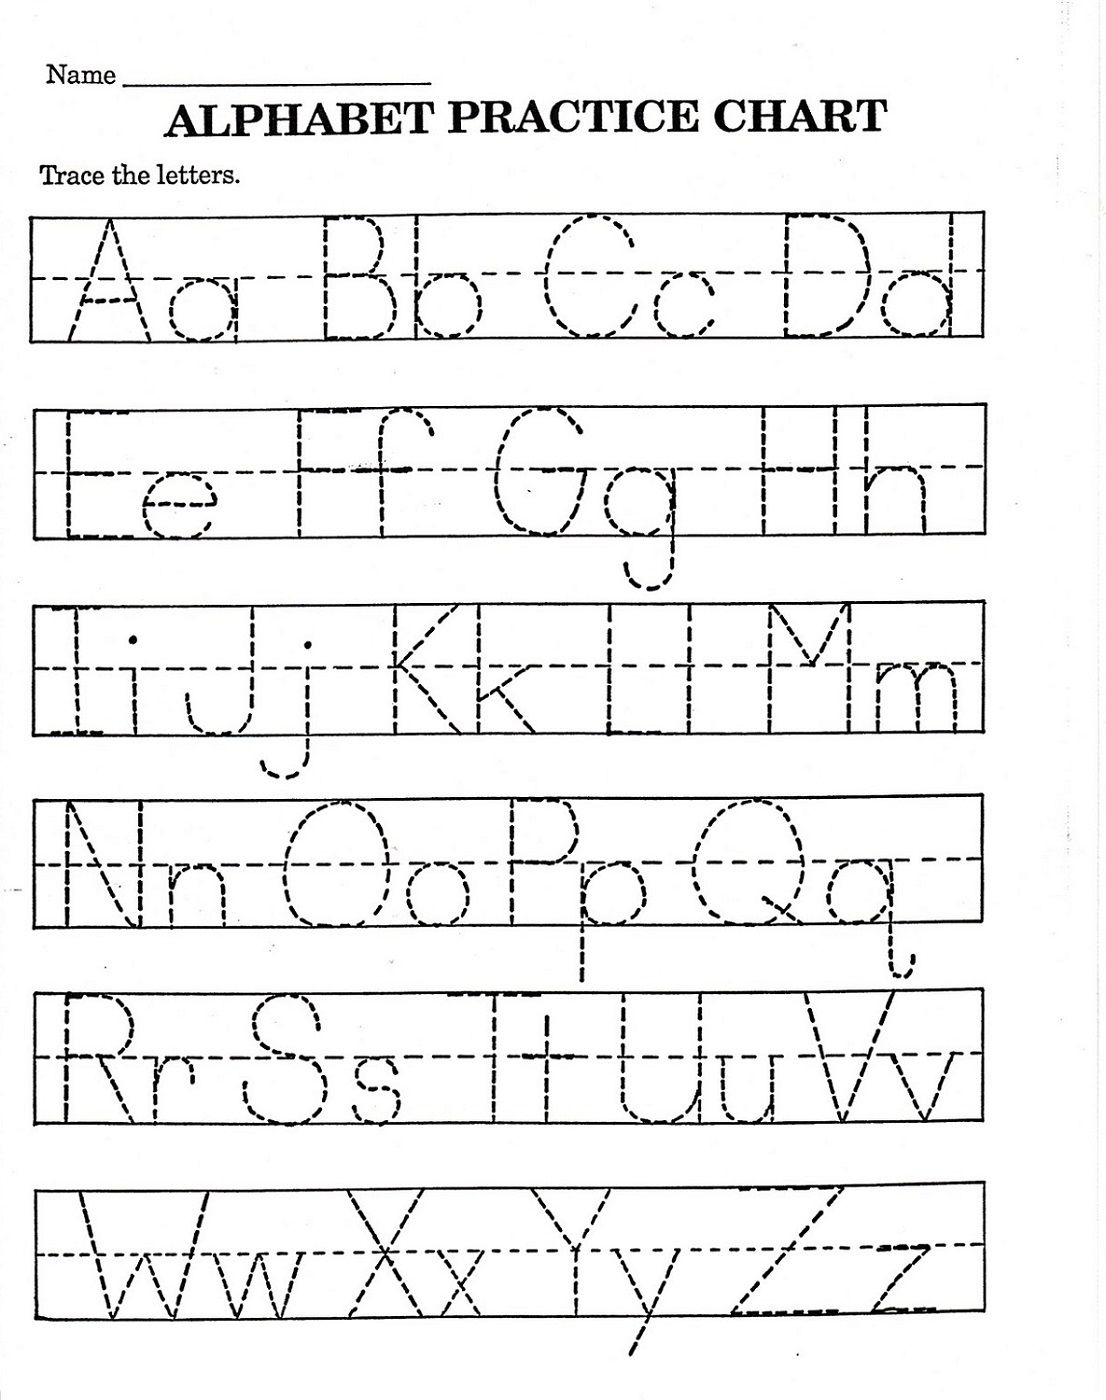 Trace Letter Worksheets Free | Reading And Phonics | Alphabet - Free Printable Alphabet Worksheets